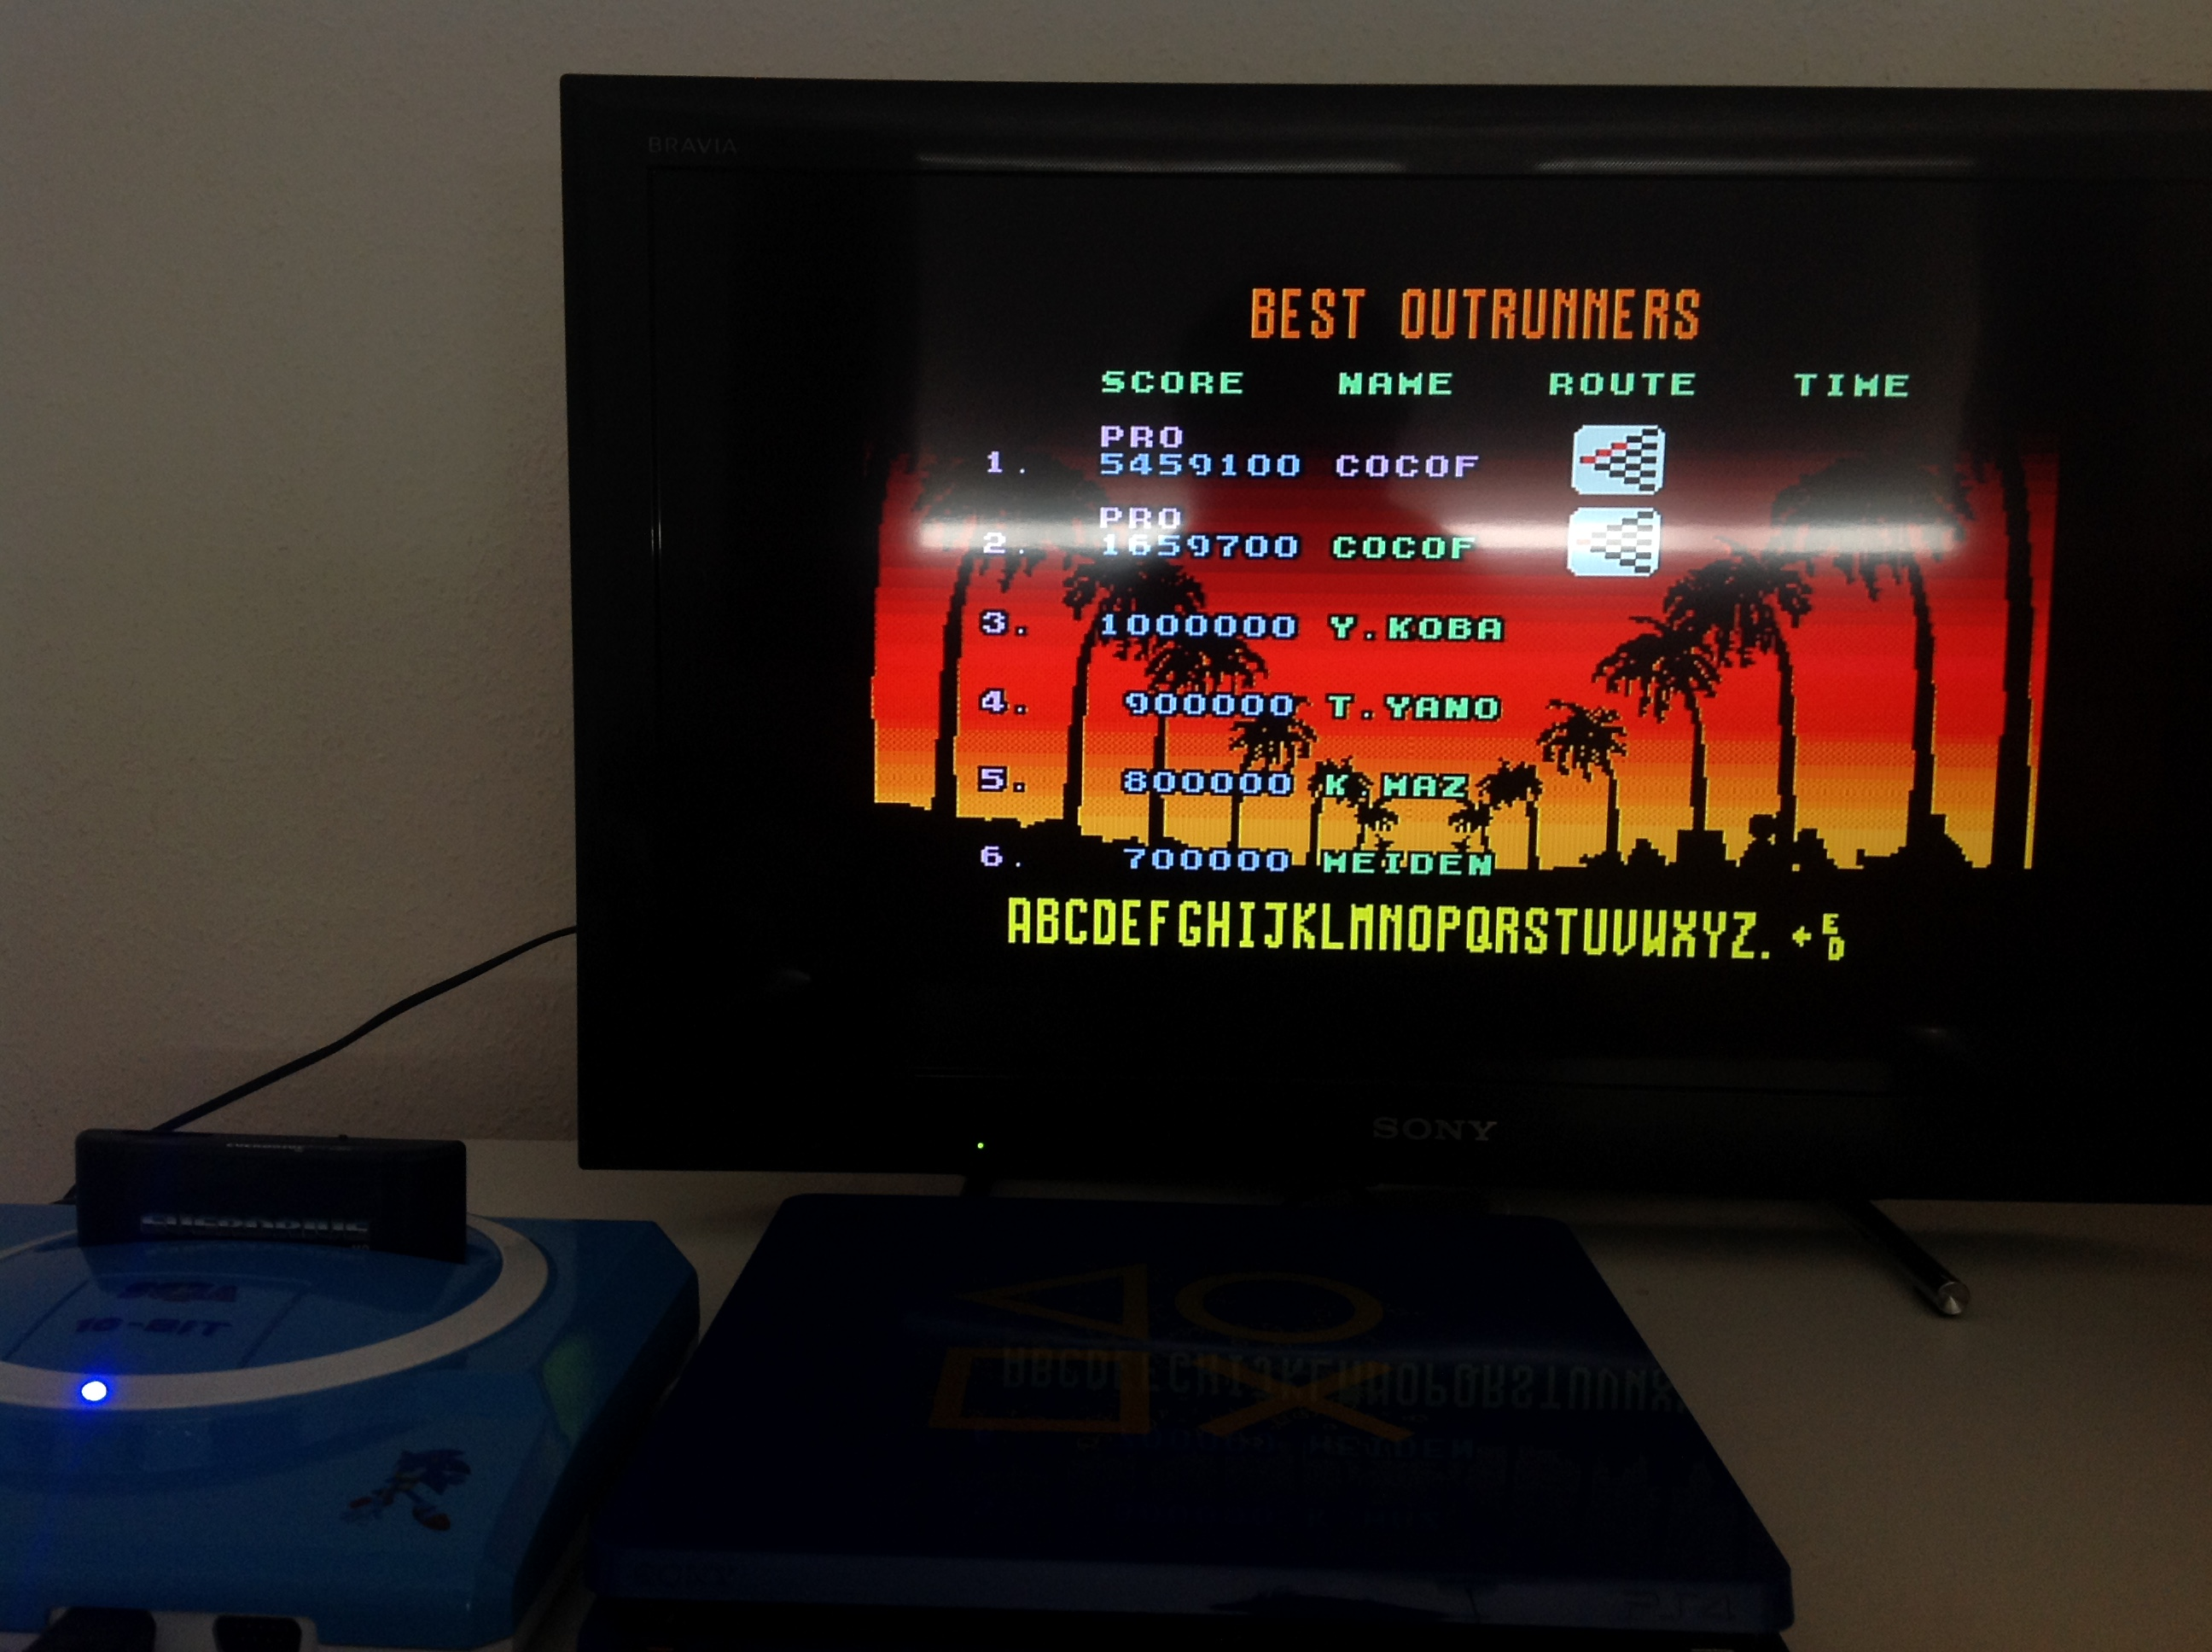 CoCoForest: Outrun [Pro] (Sega Genesis / MegaDrive) 5,459,100 points on 2018-07-18 08:02:13